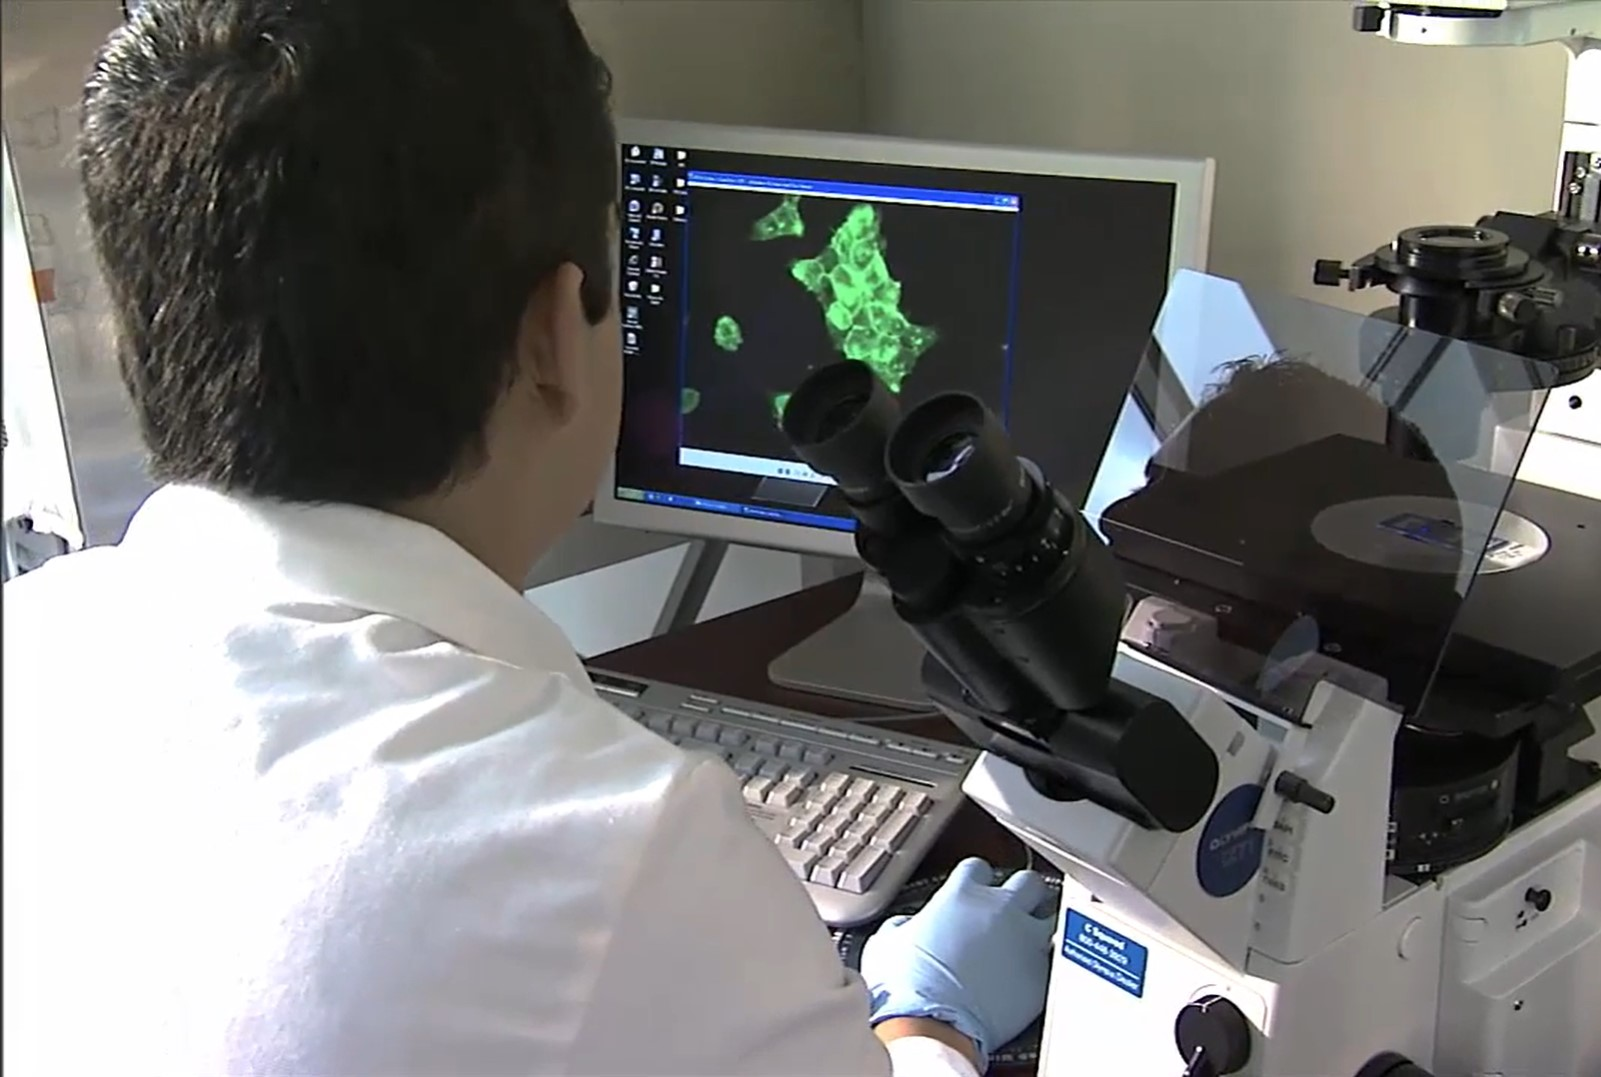 An oral clinical researcher viewing images taken under a microscope